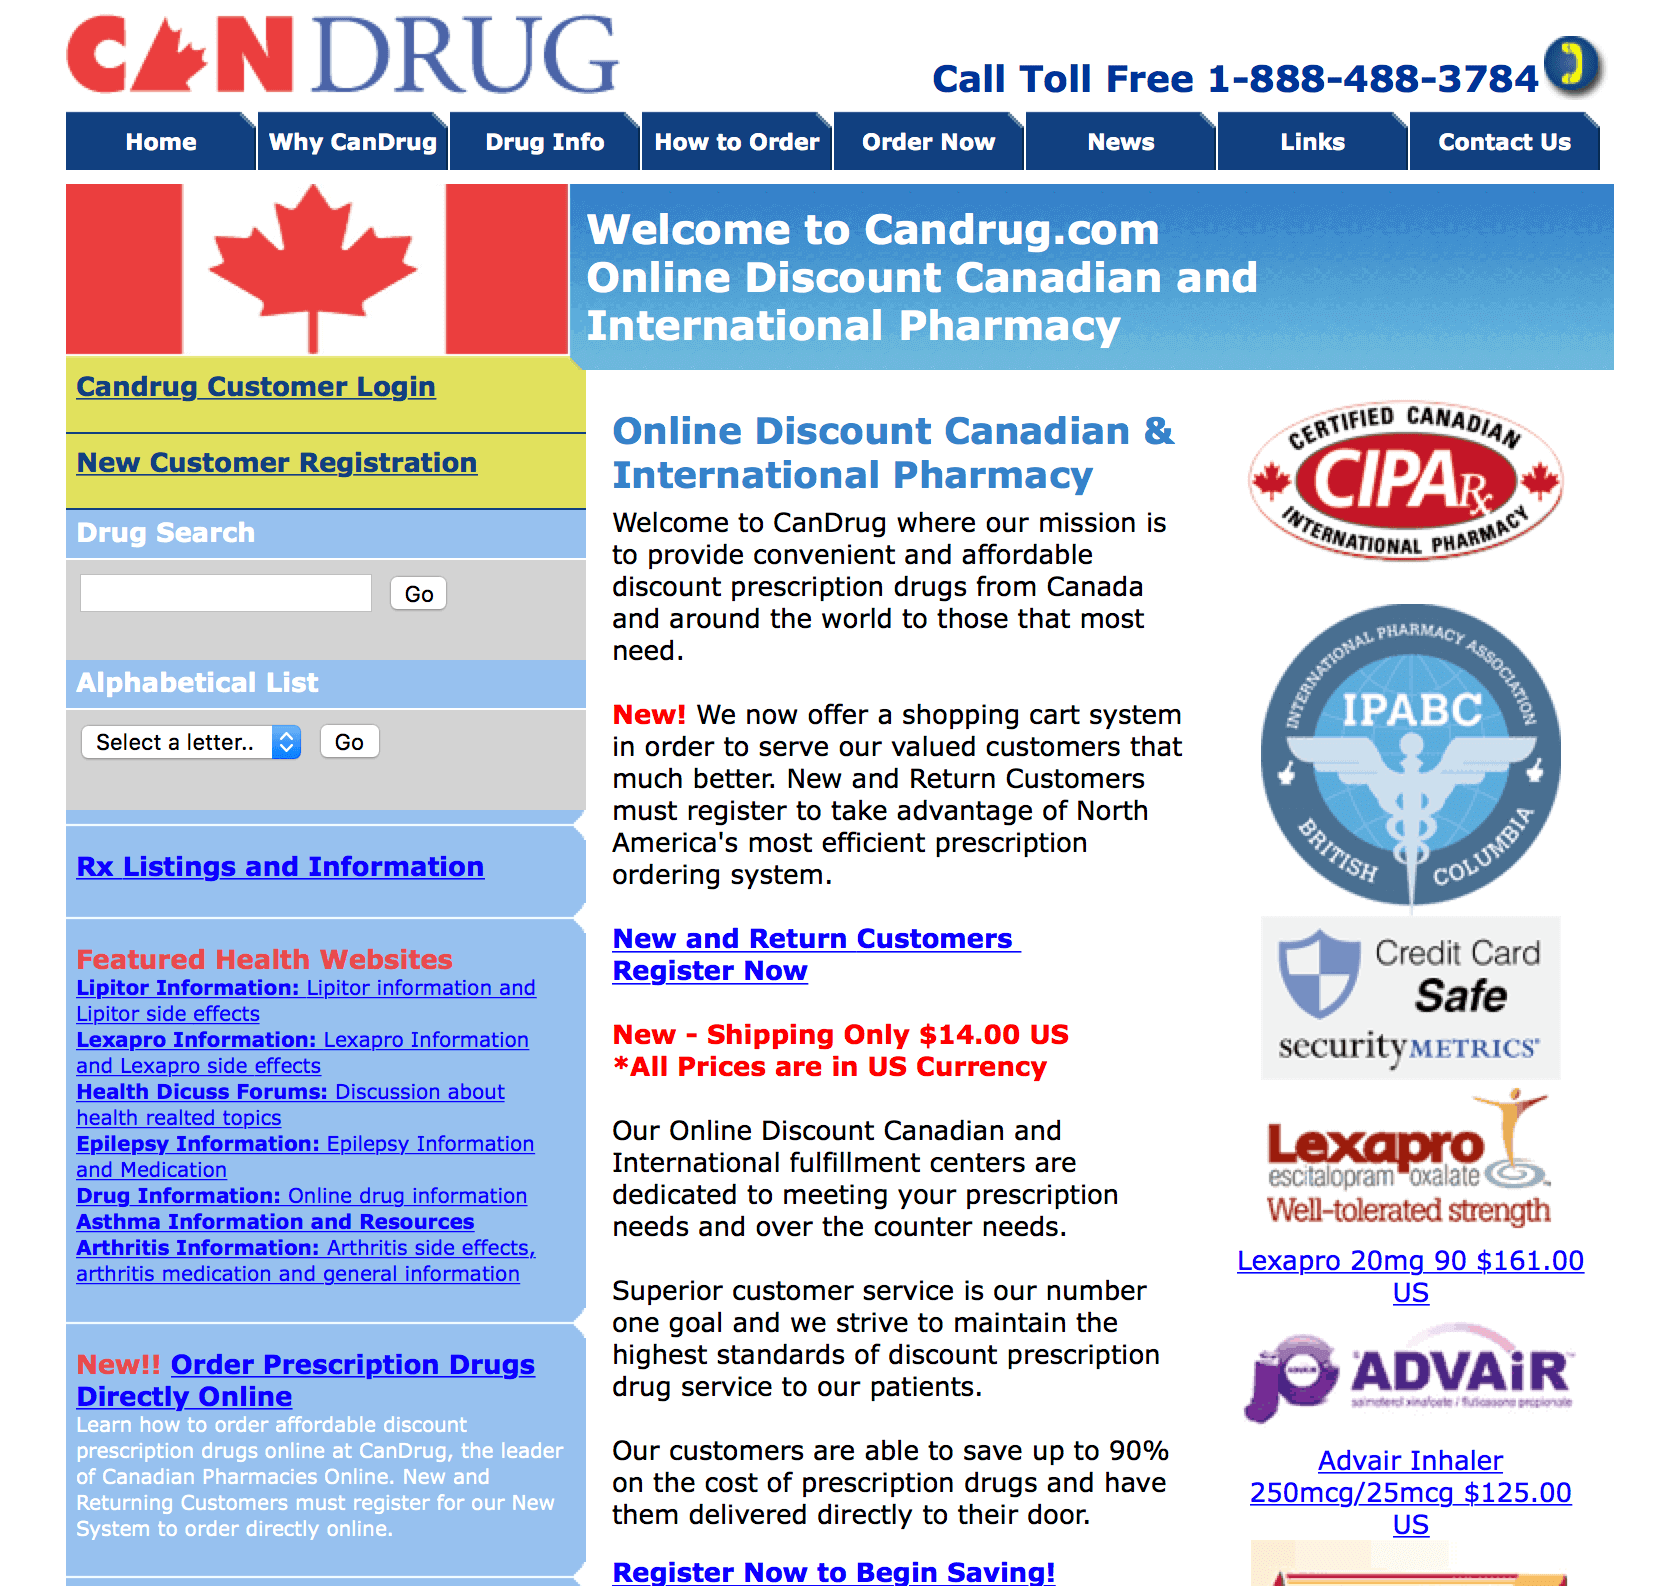 CanDrug.com Pharmacy Review